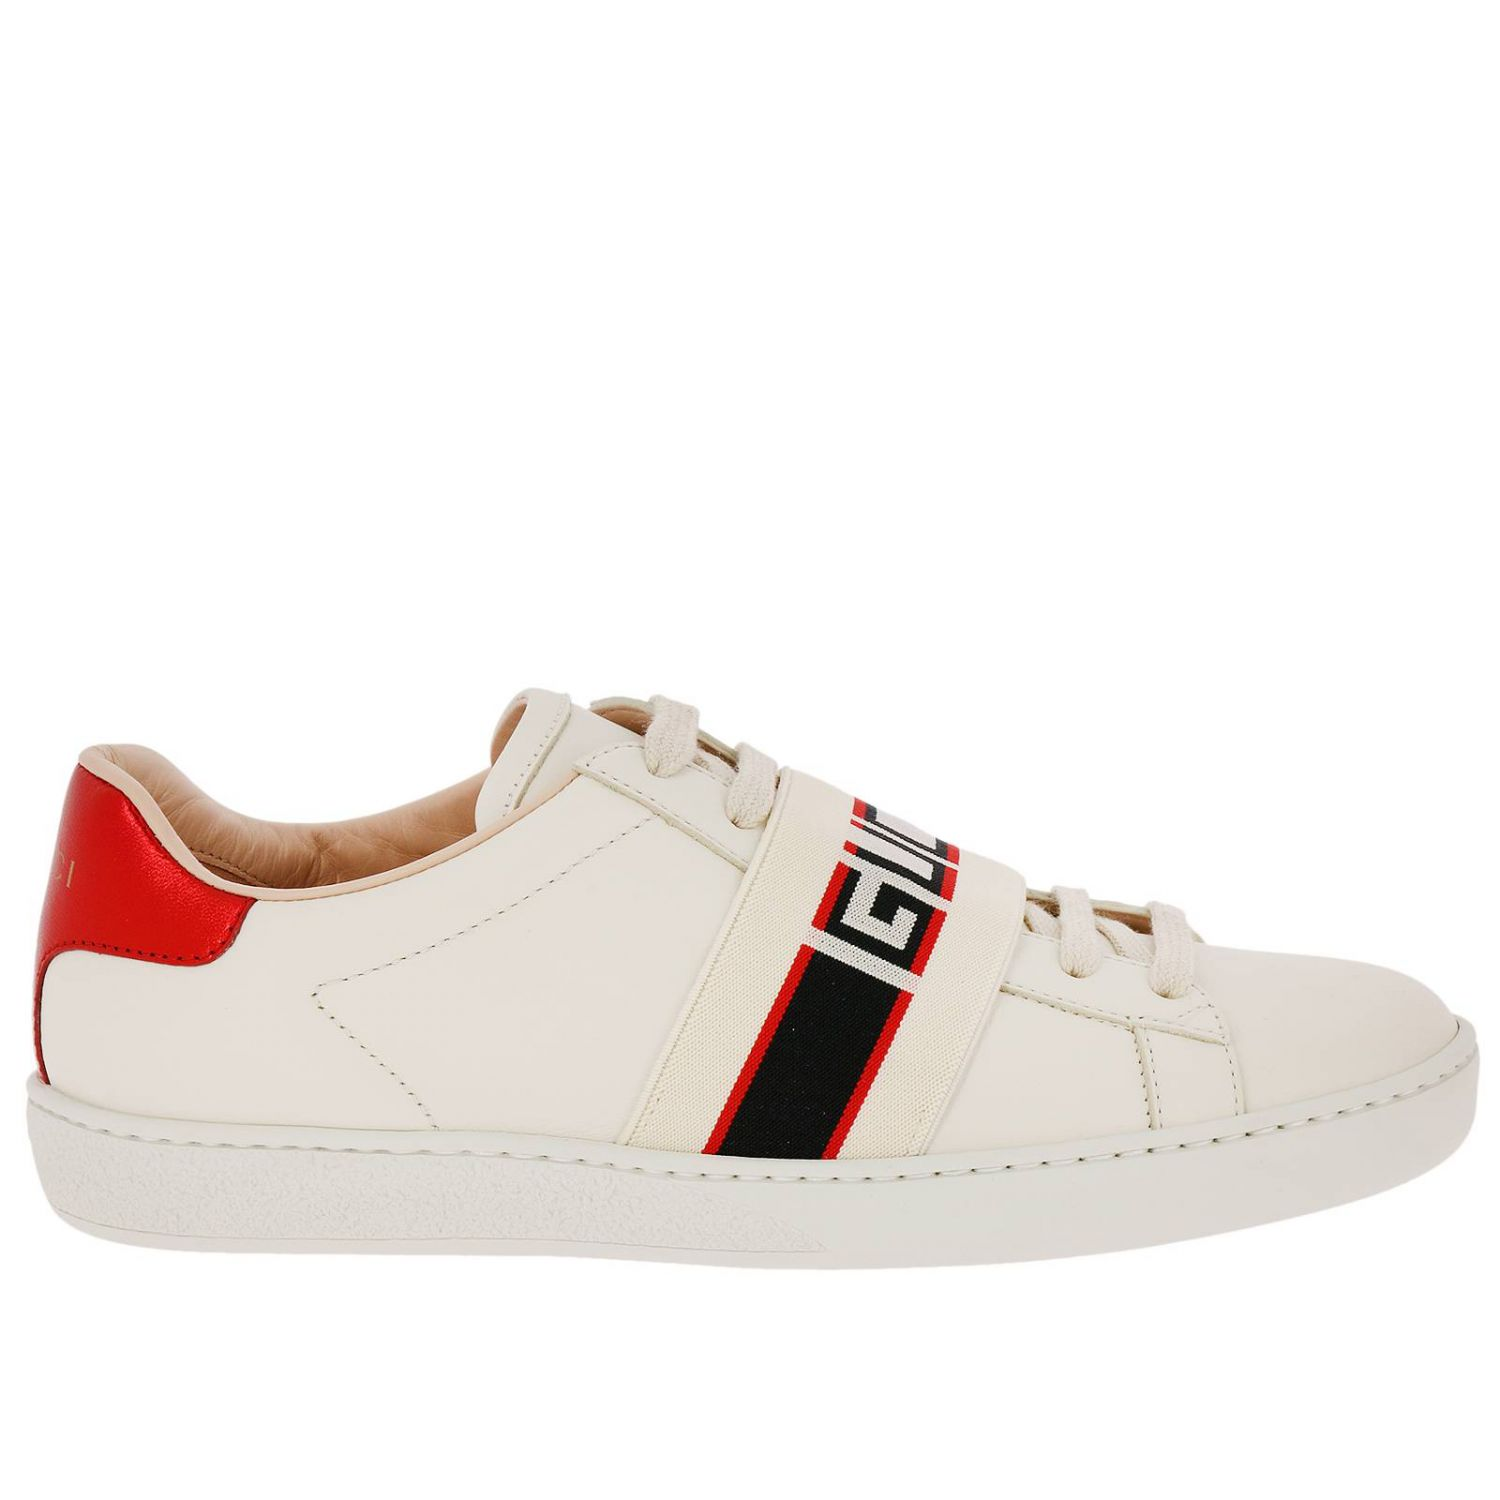 Sneakers New Ace Sneakers In Soft Leather With Gucci Elastic Band 8400651